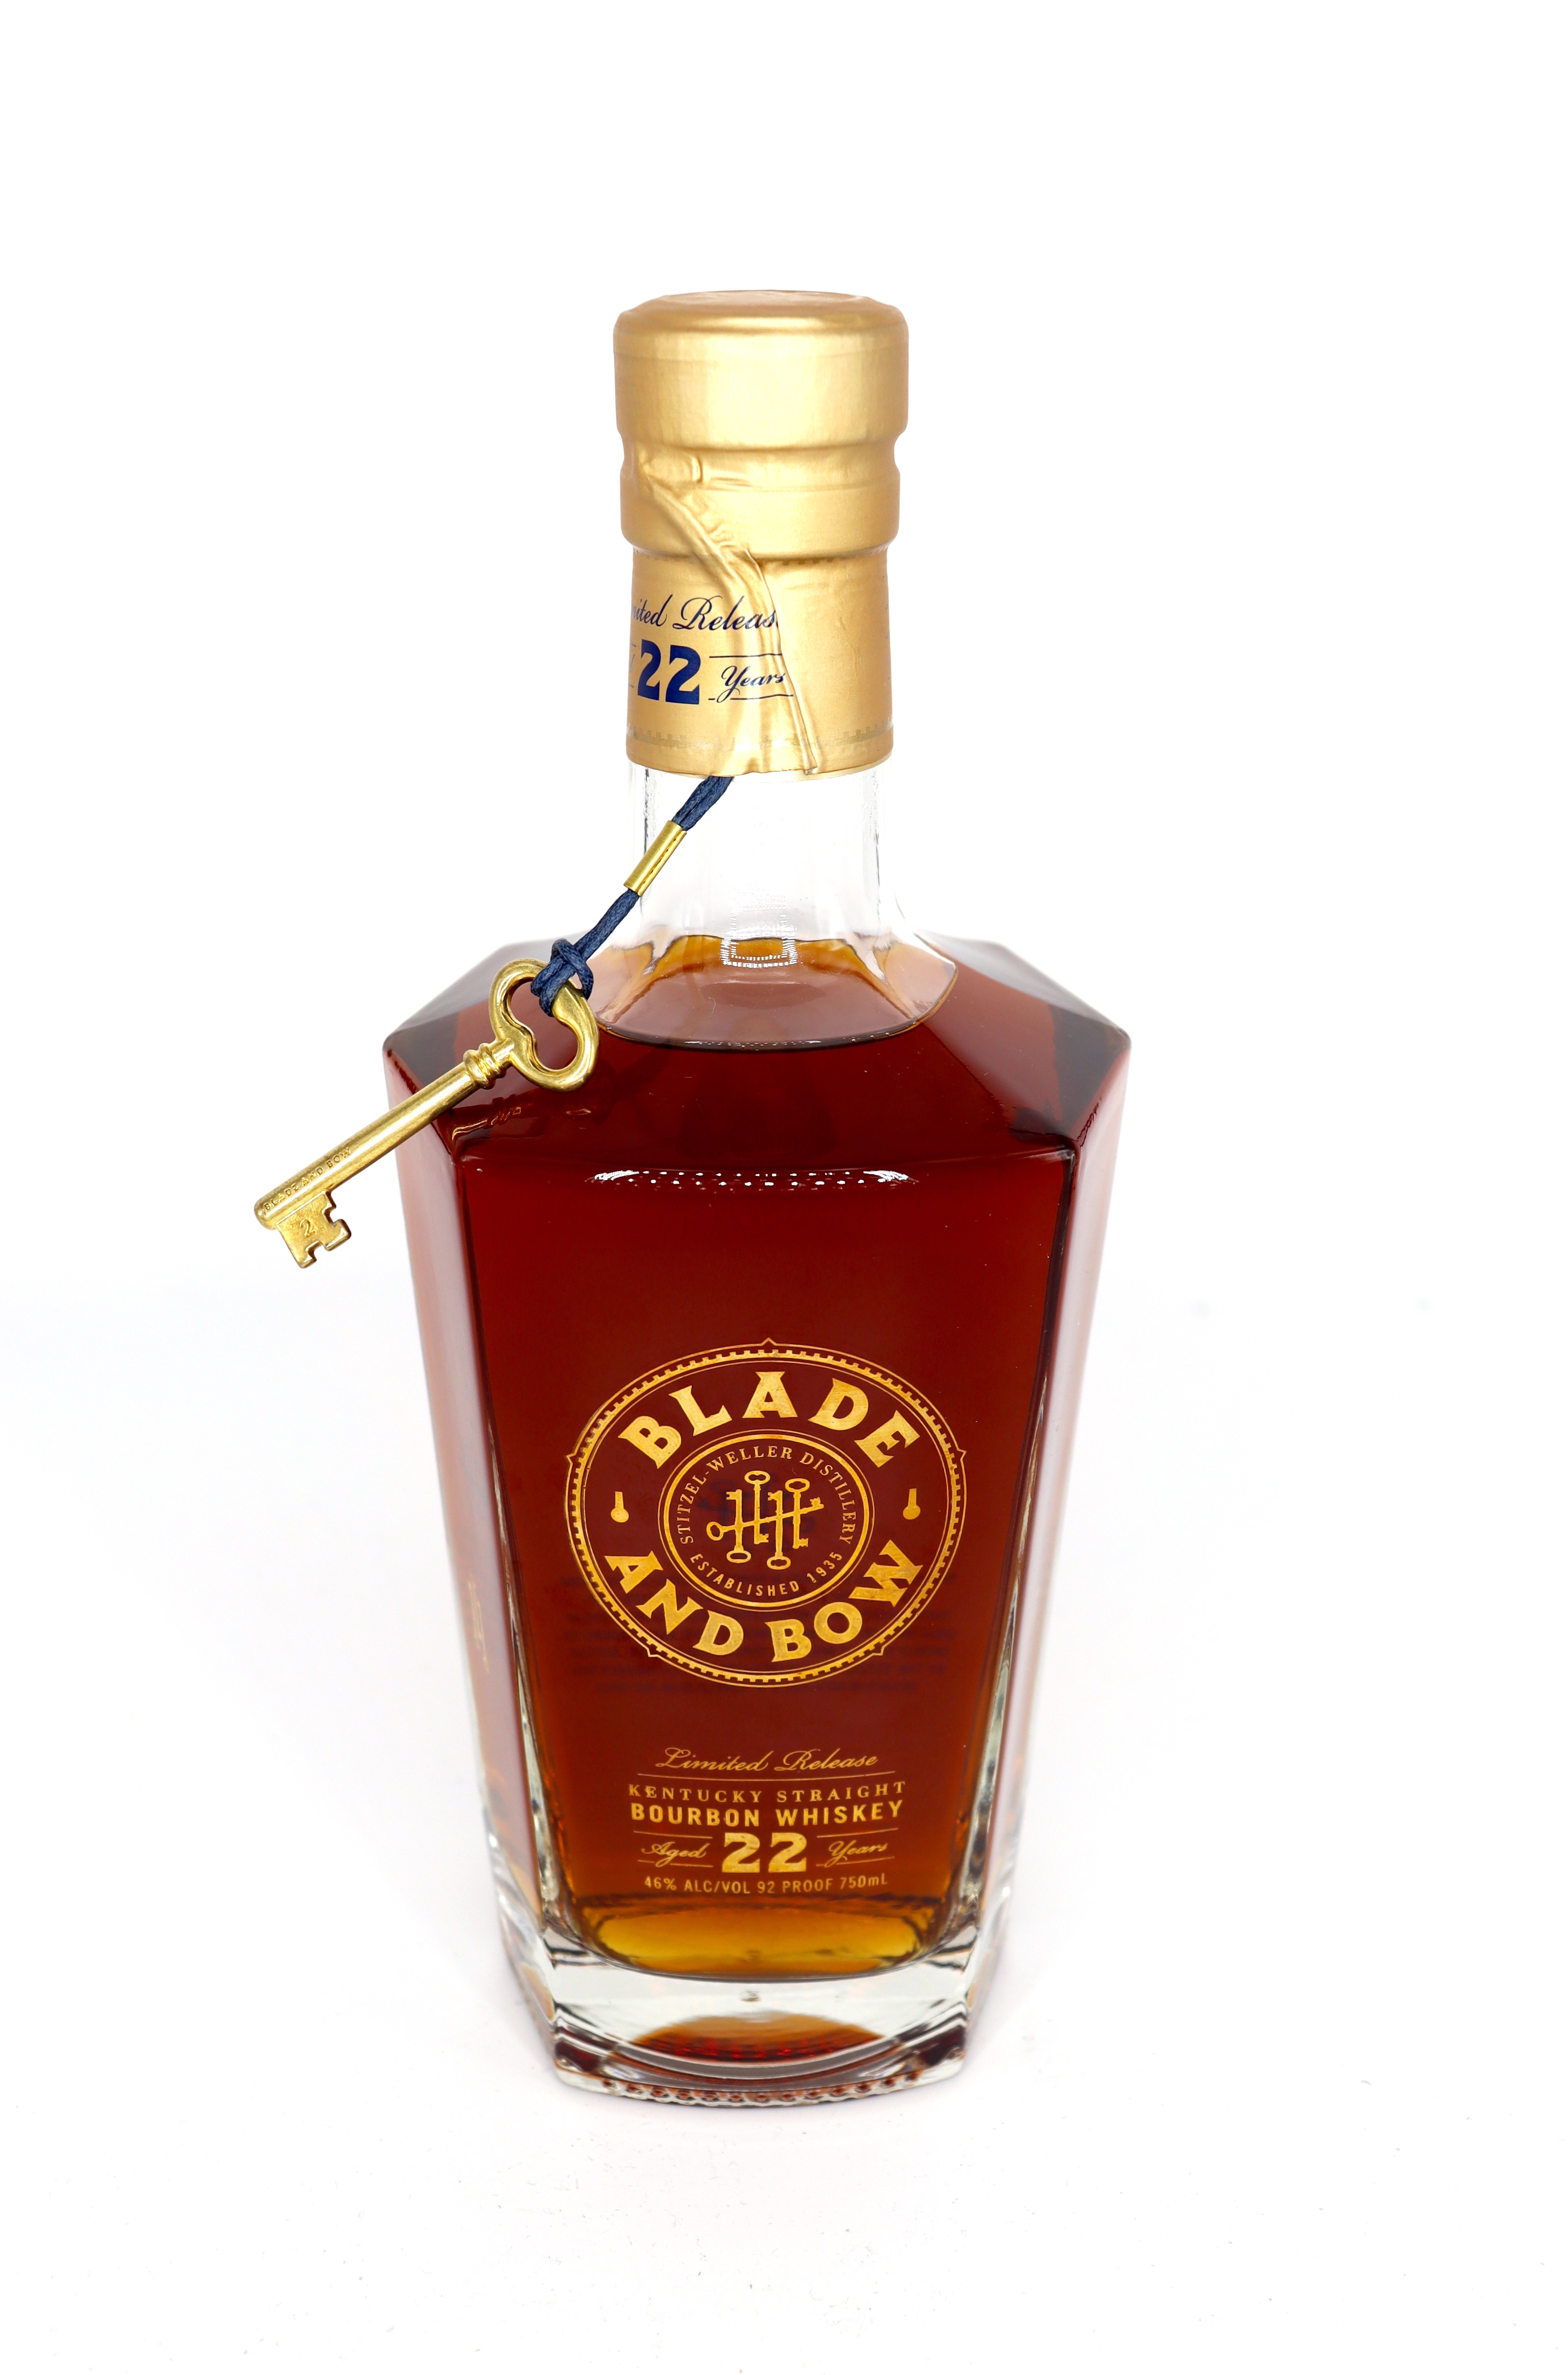 Blade and Bow Limited Release 22 year Old Kentucky Straight bourbon